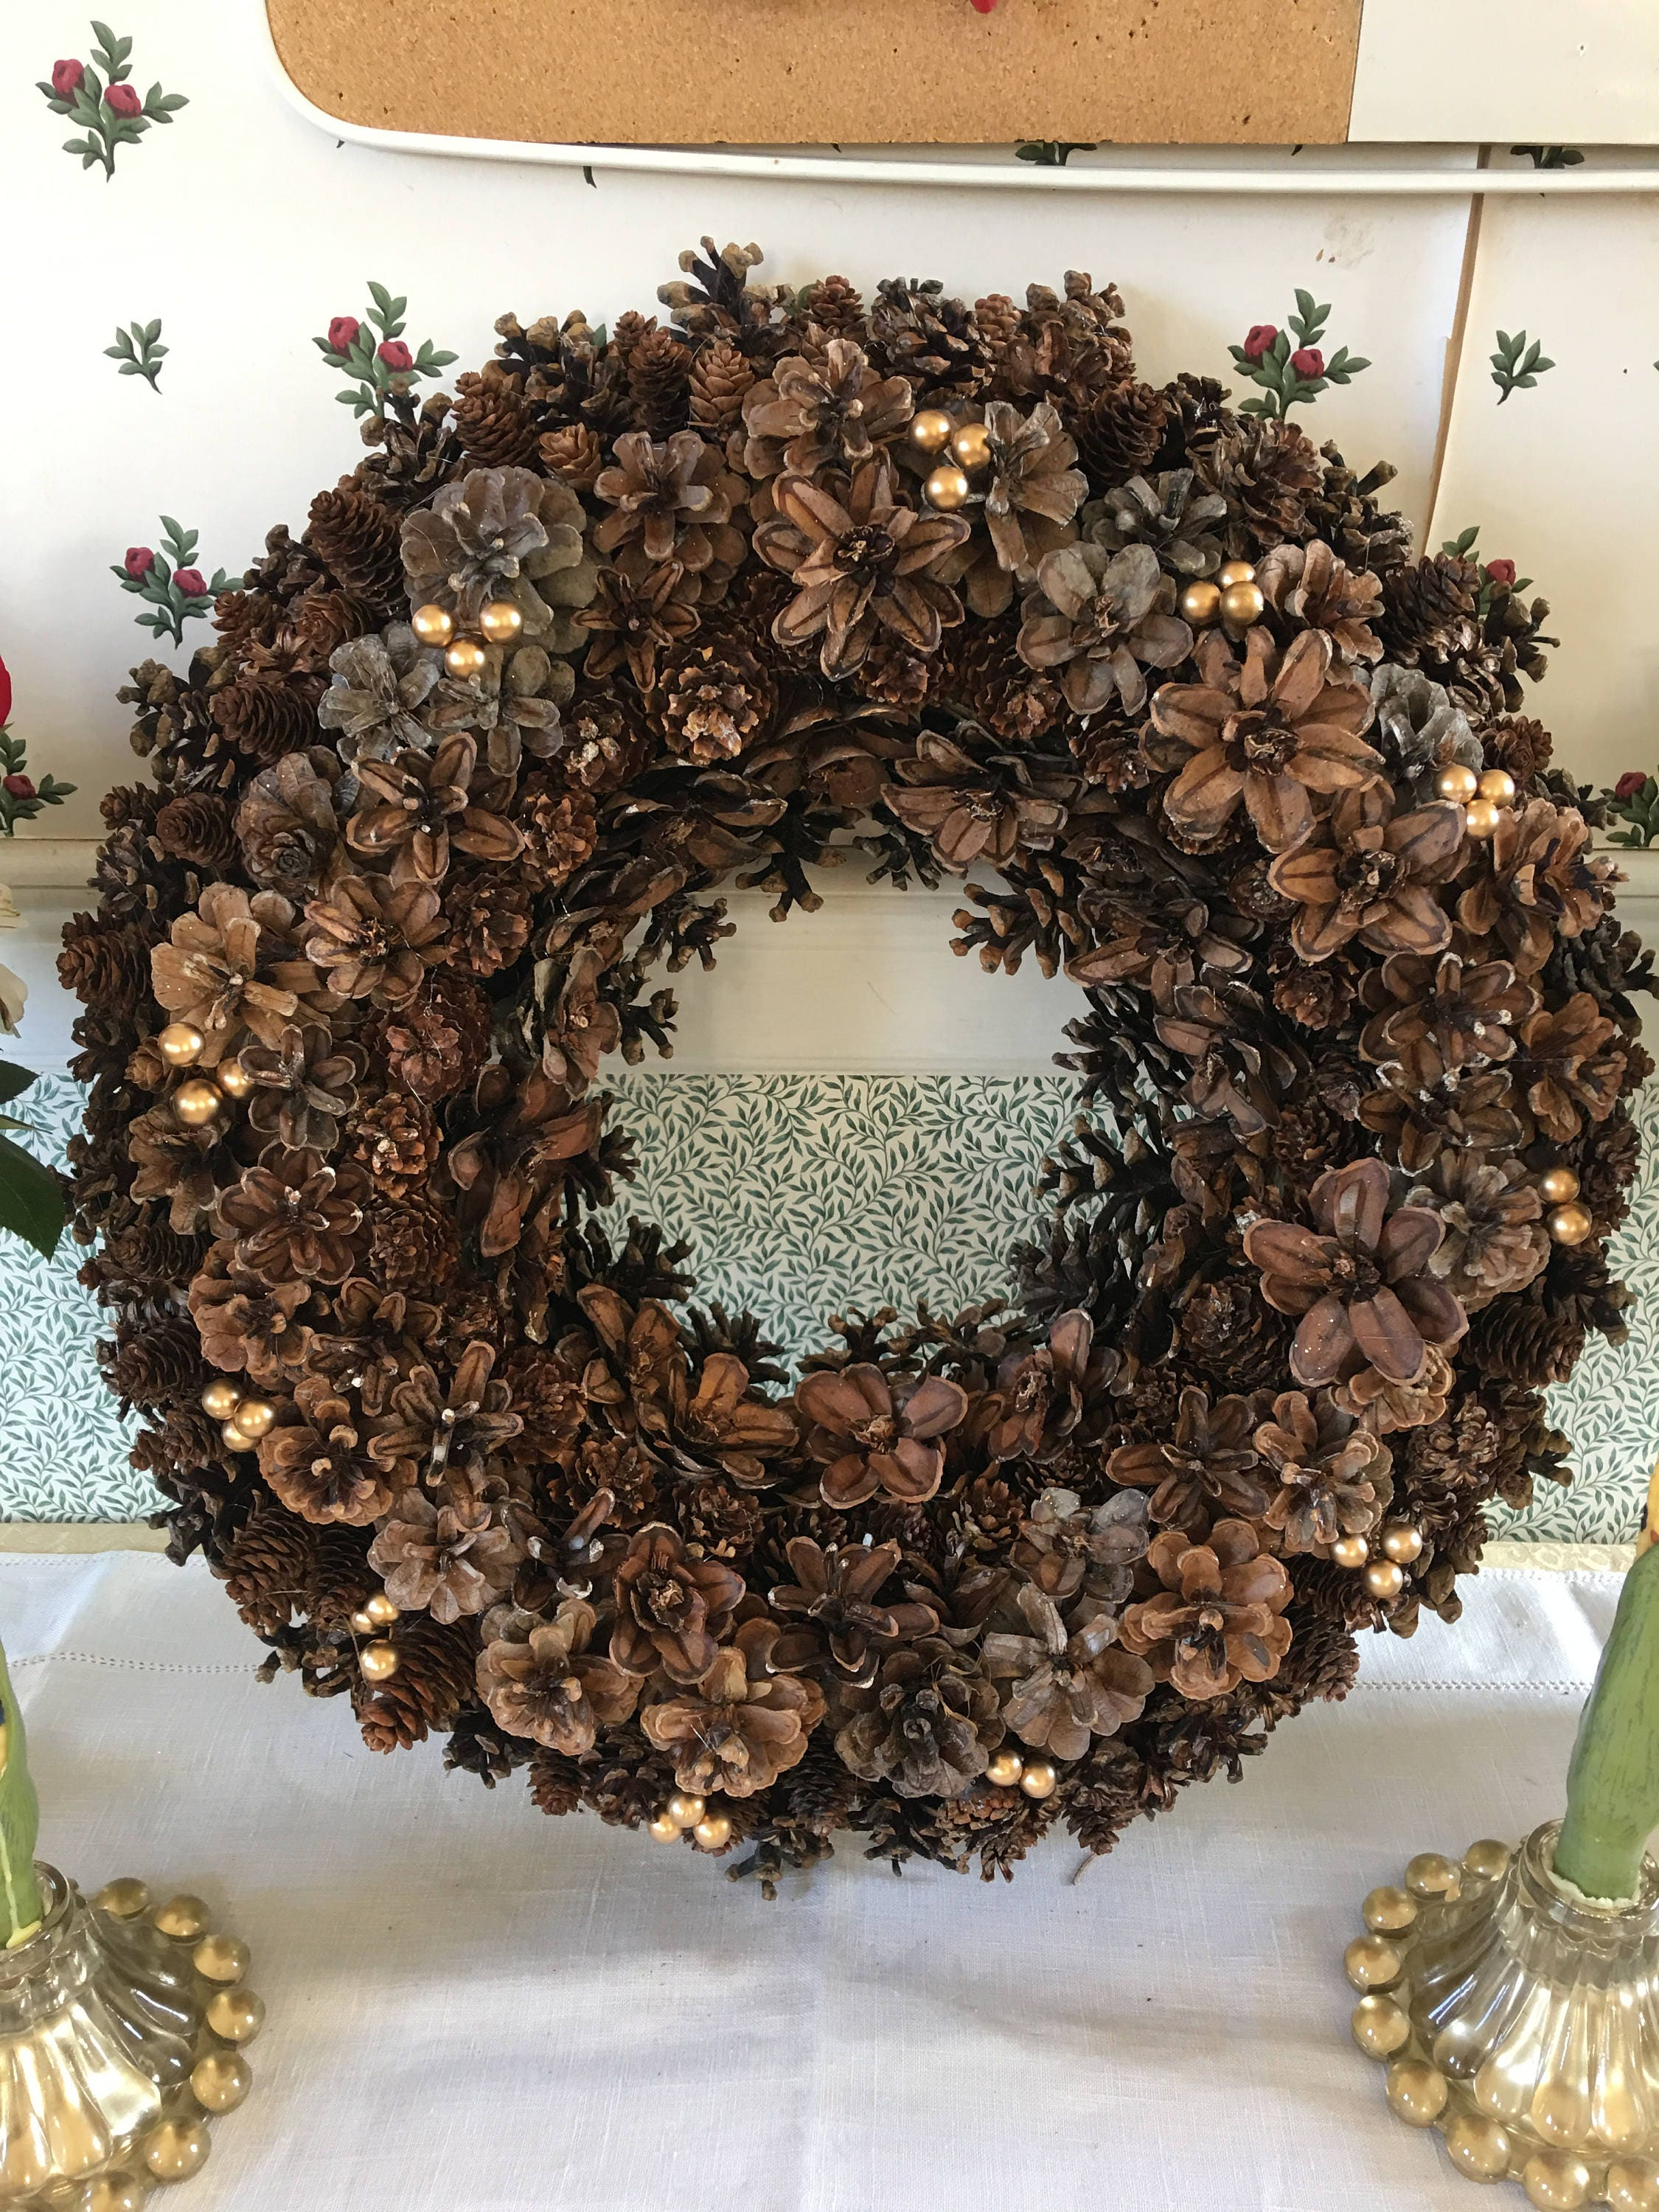 Maine Made Hand Crafted Pinecone Wreath Indoor Gold Berries Large Wall Door Decor Pine Spruce Cedar Spruce Cones Table Centerpiece